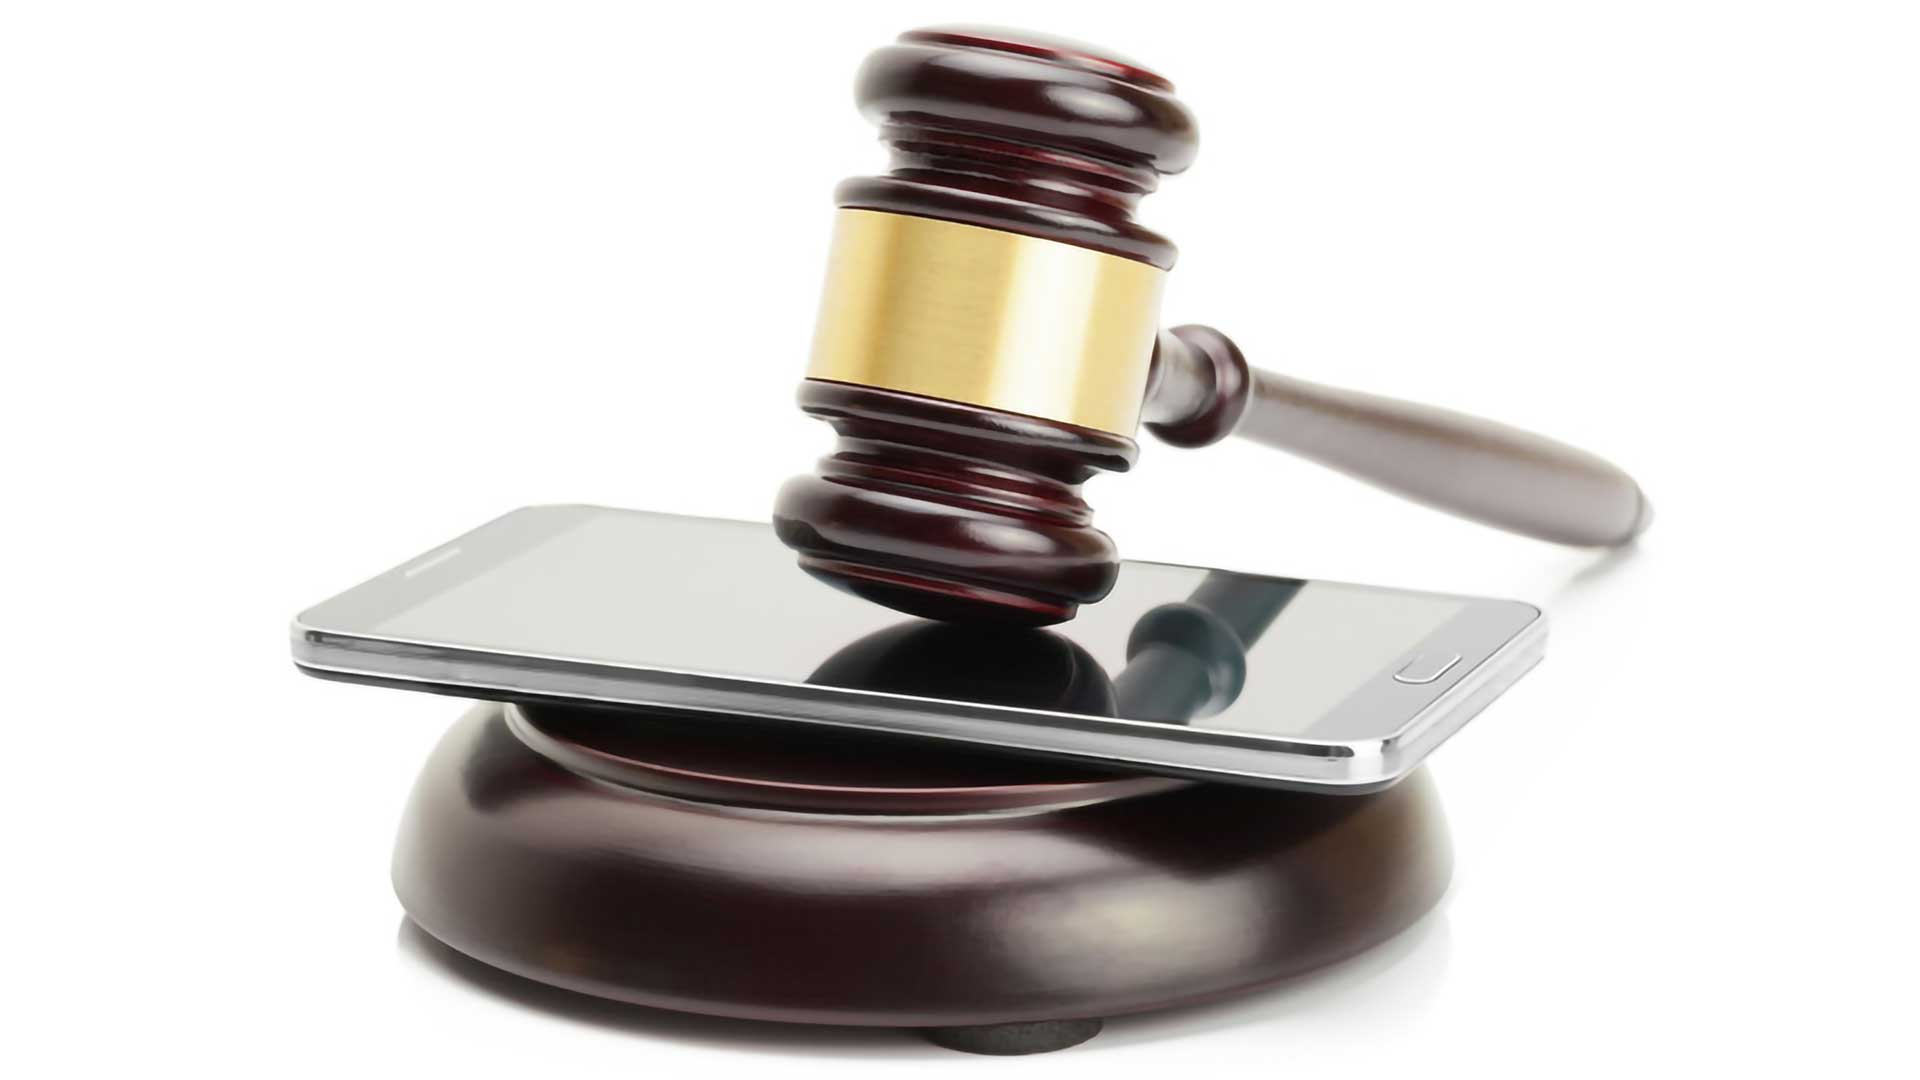 Cell phone criminal lawyers Fresno will help you with illegal search and seizures. Need experienced advice in criminal prosecutions.